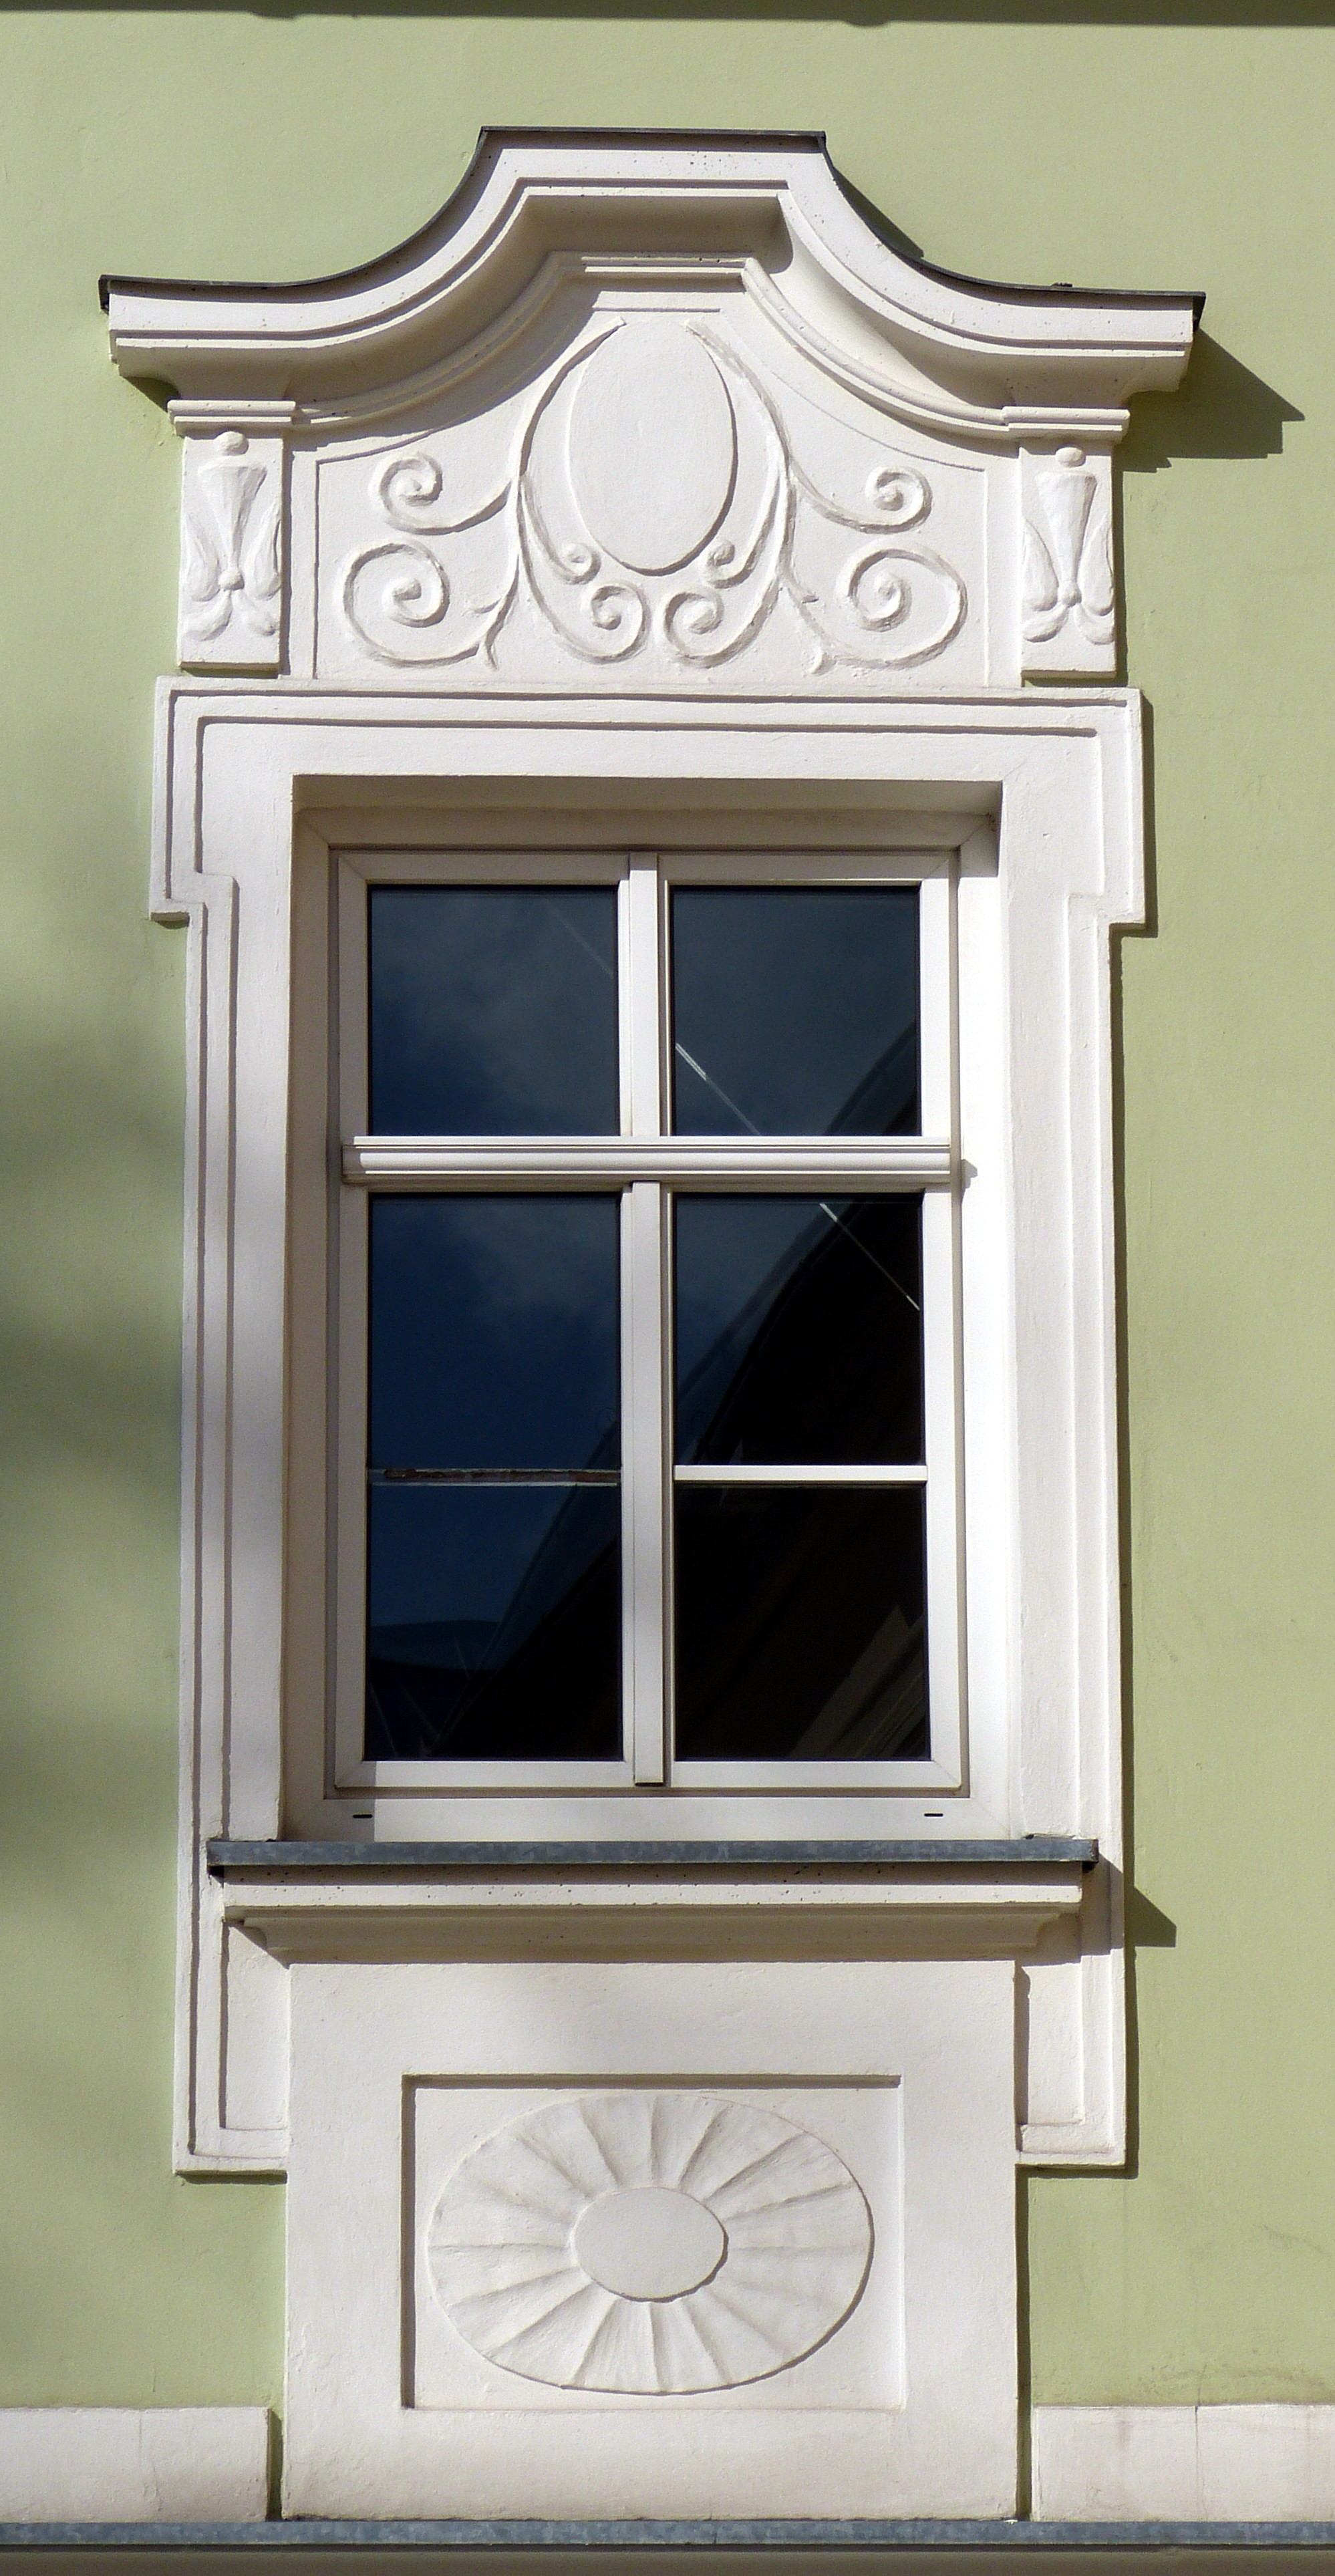 Fenster Bad File Bad Leonfelden Hauptplatz 18 Fenster Jpg Wikimedia Commons